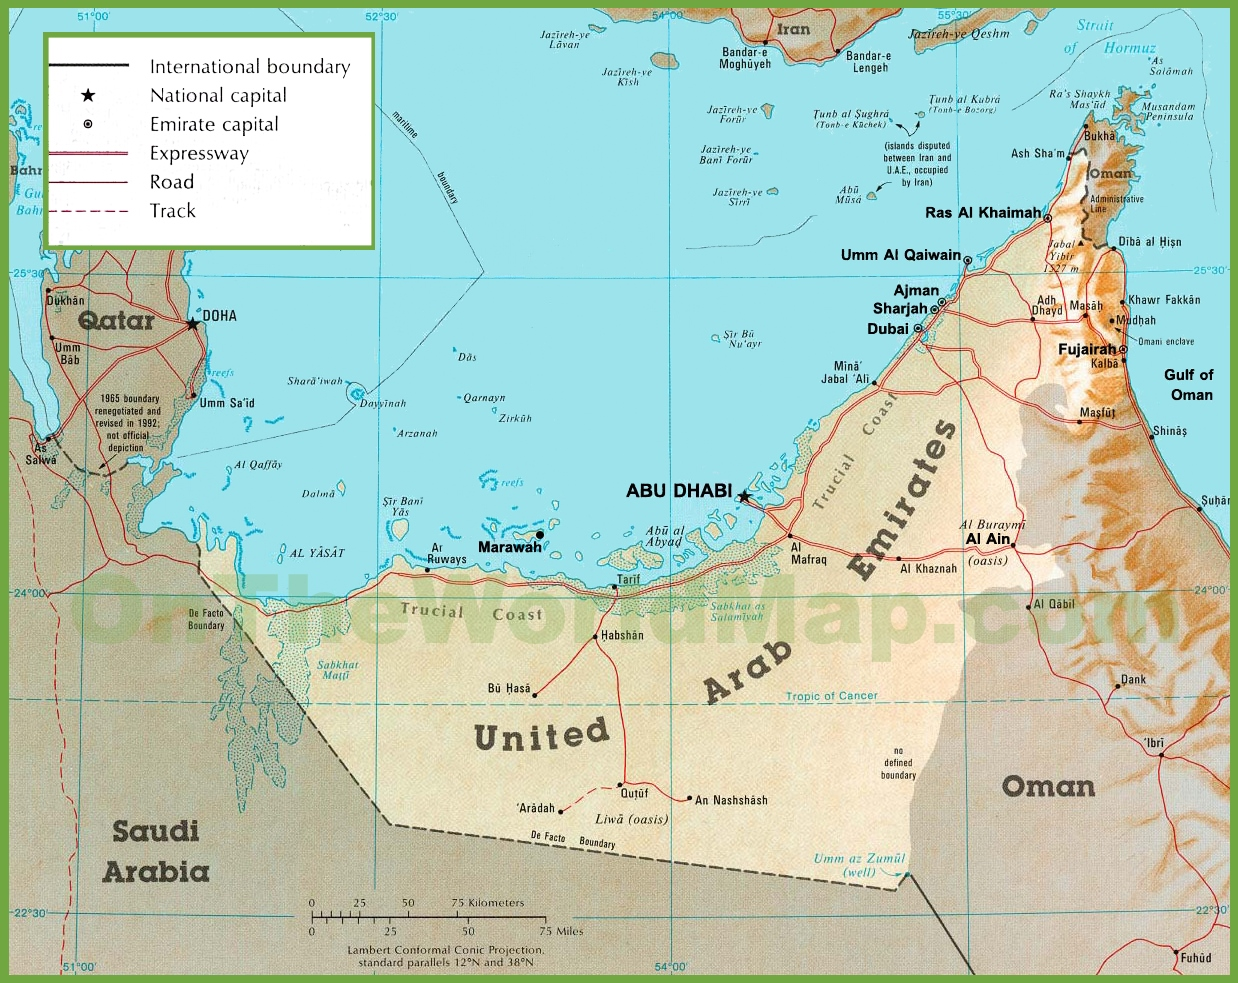 United Arab Emirates Maps Maps Of UAE United Arab Emirates - United arab emirates map